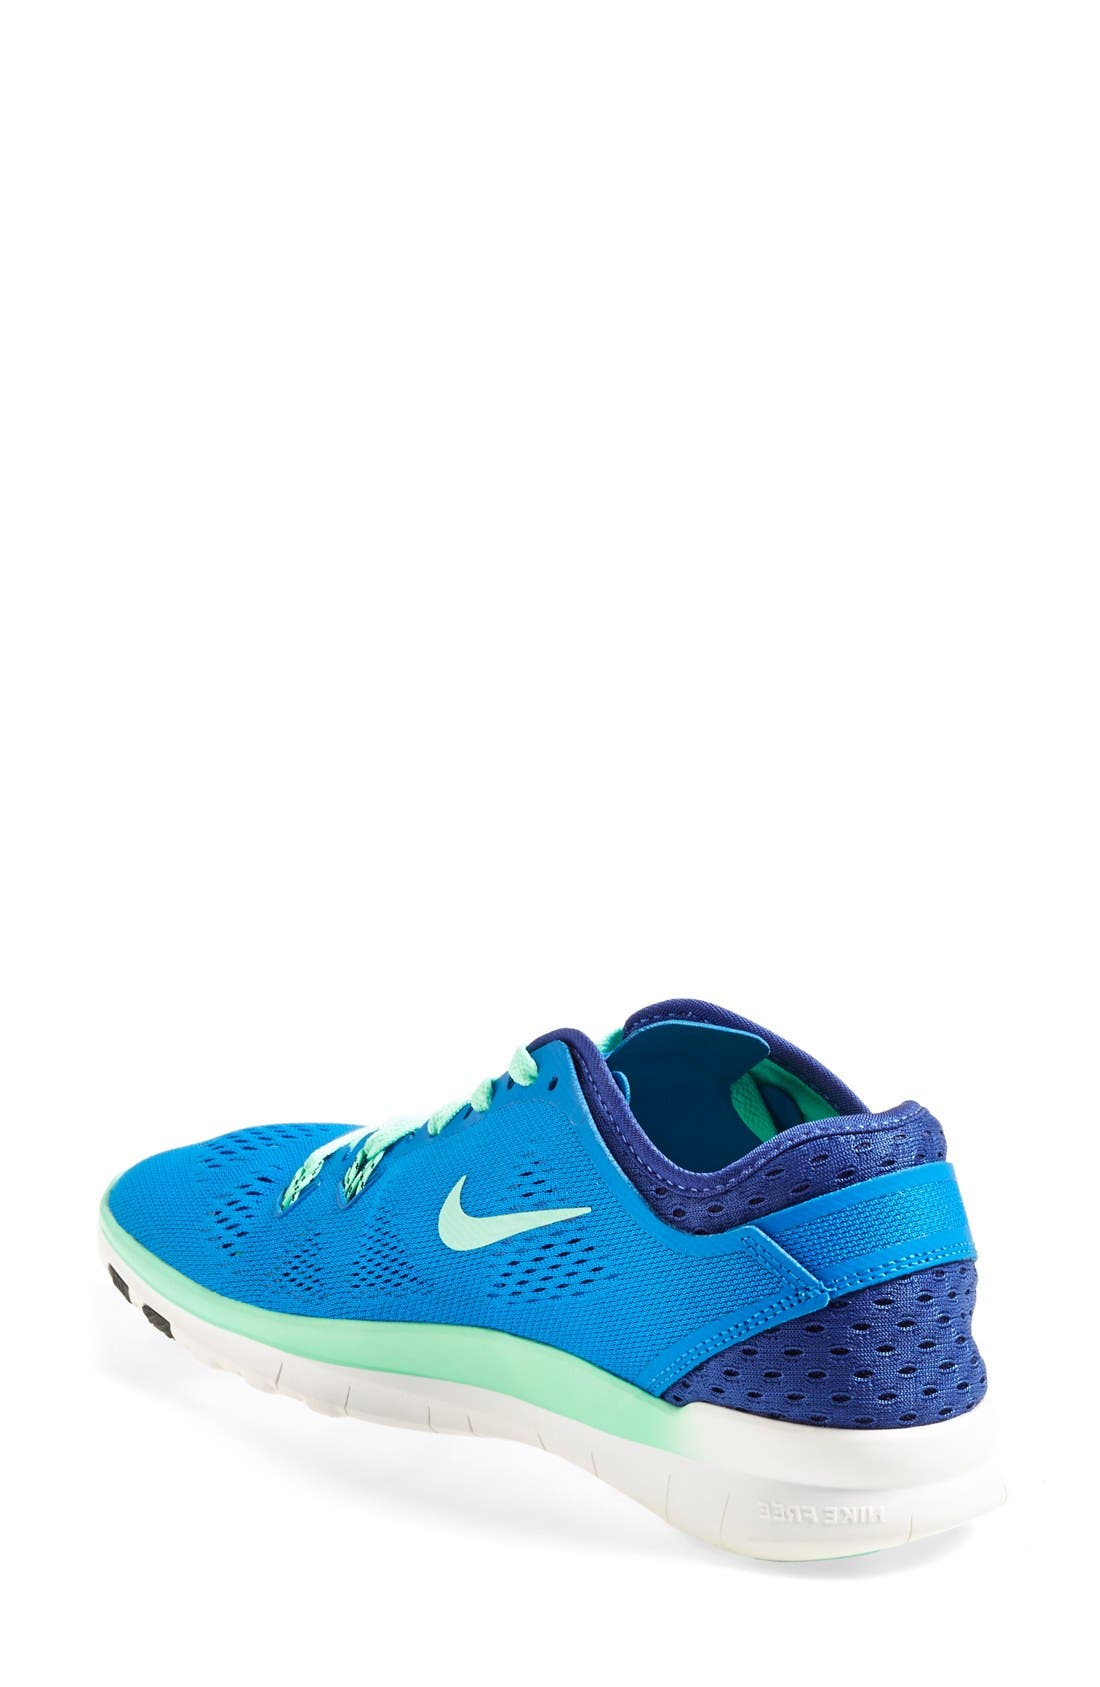 Alternate Image 2  - Nike 'Free 5.0 TR Fit 5 Breathe' Training Shoe (Women)